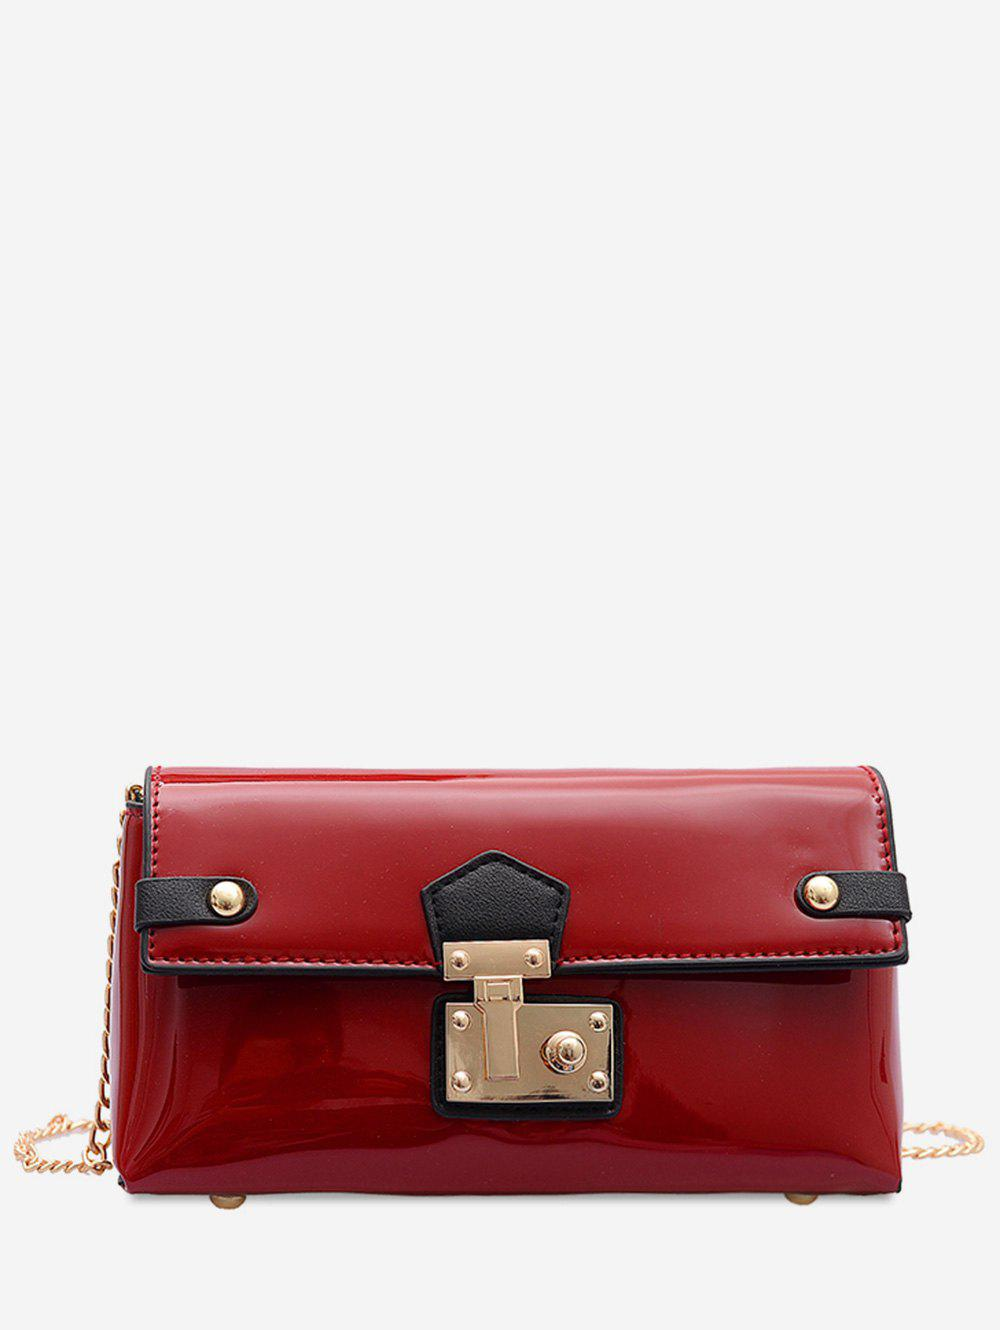 Metal Buckle Patent Leather Chain Crossbody Bag